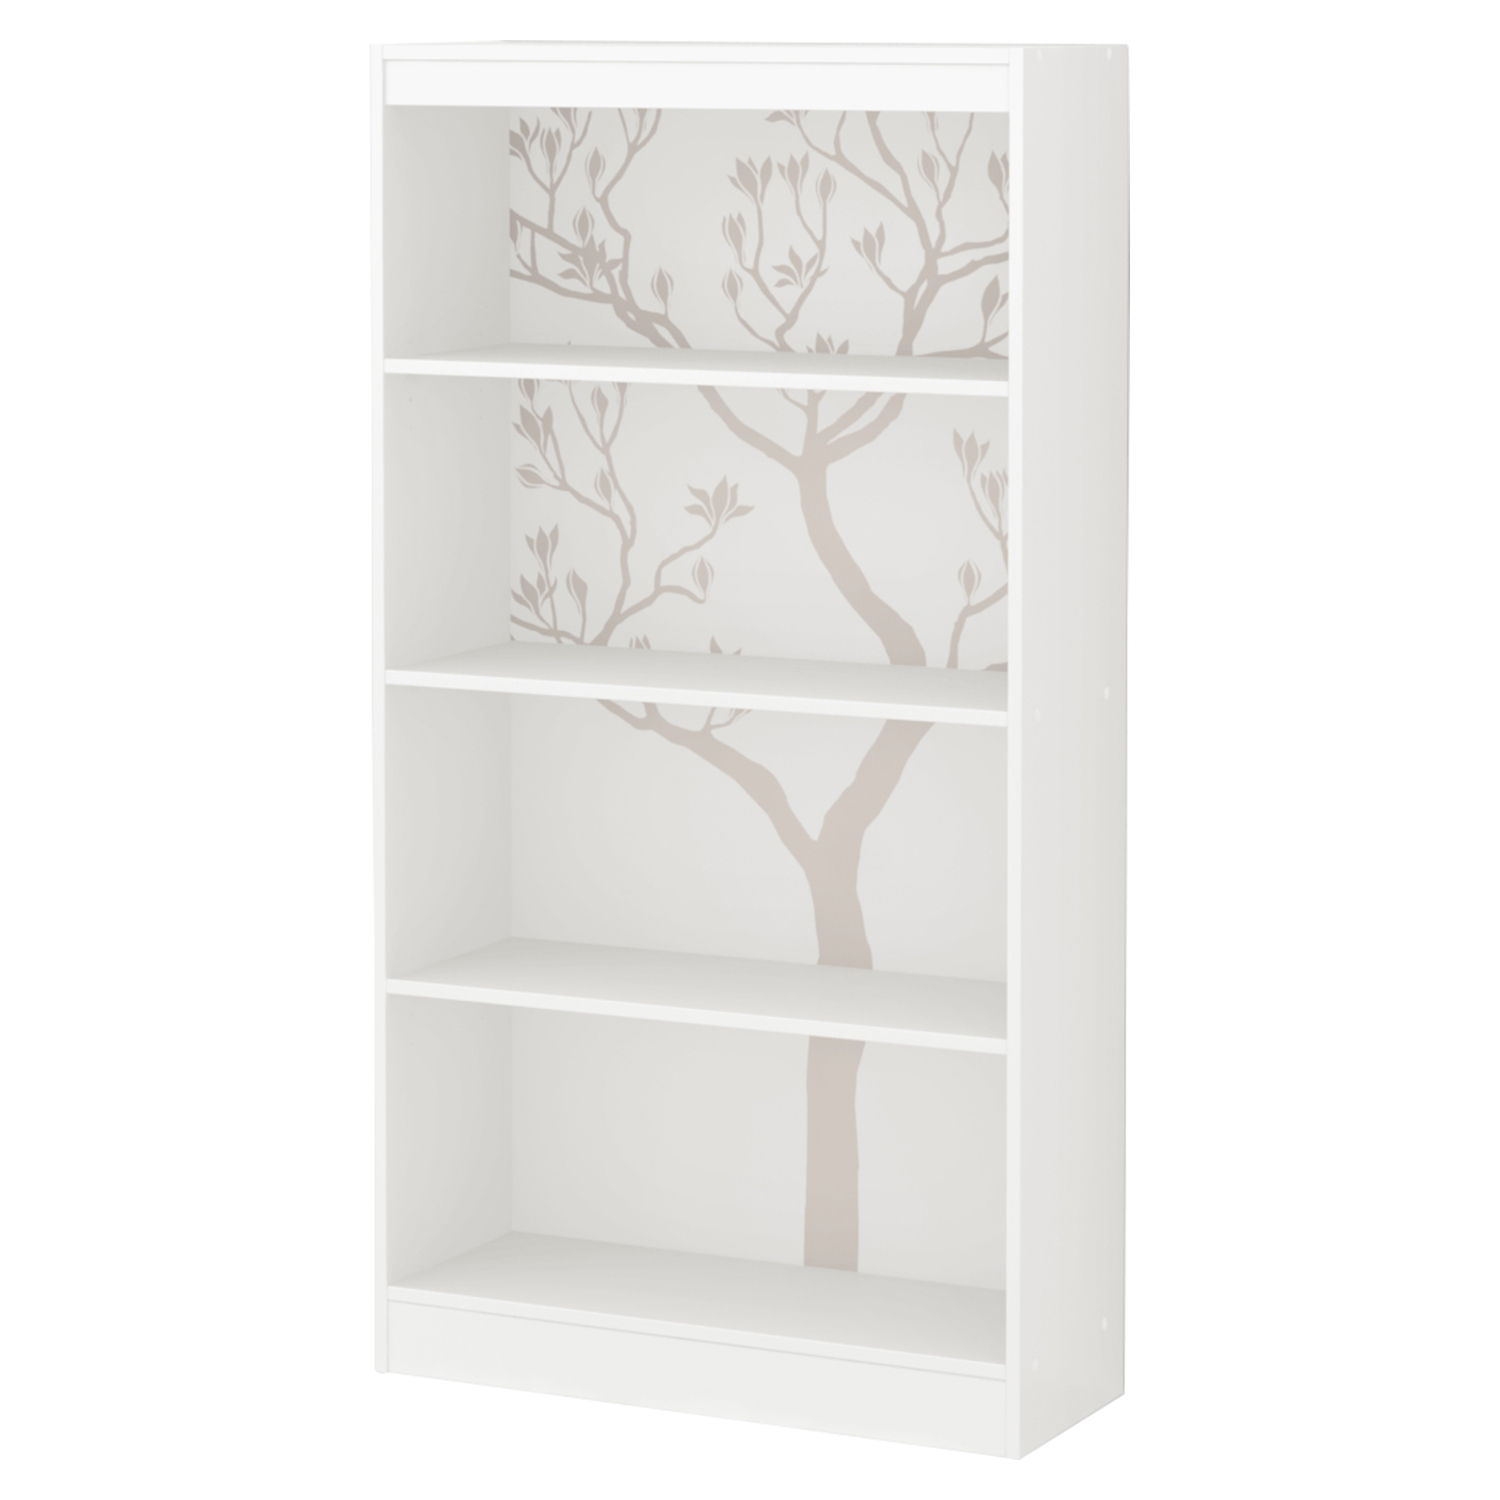 Axess Bookcase - 4 Shelves, Romantic Tree Decals, Pure White - SS-8050130K